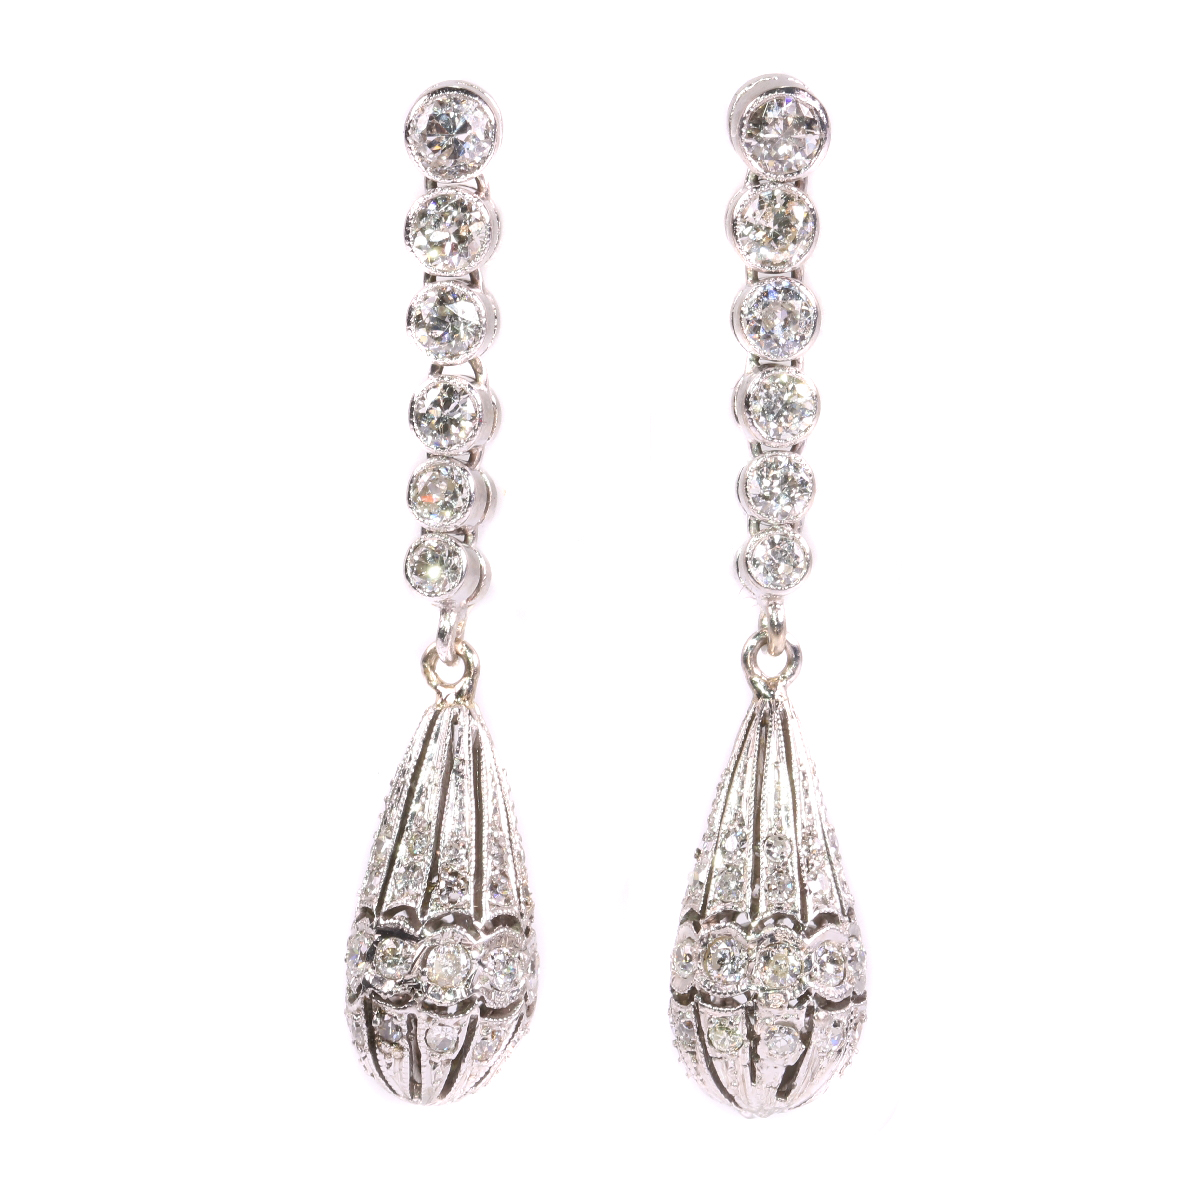 Art Deco diamond pendent earrings